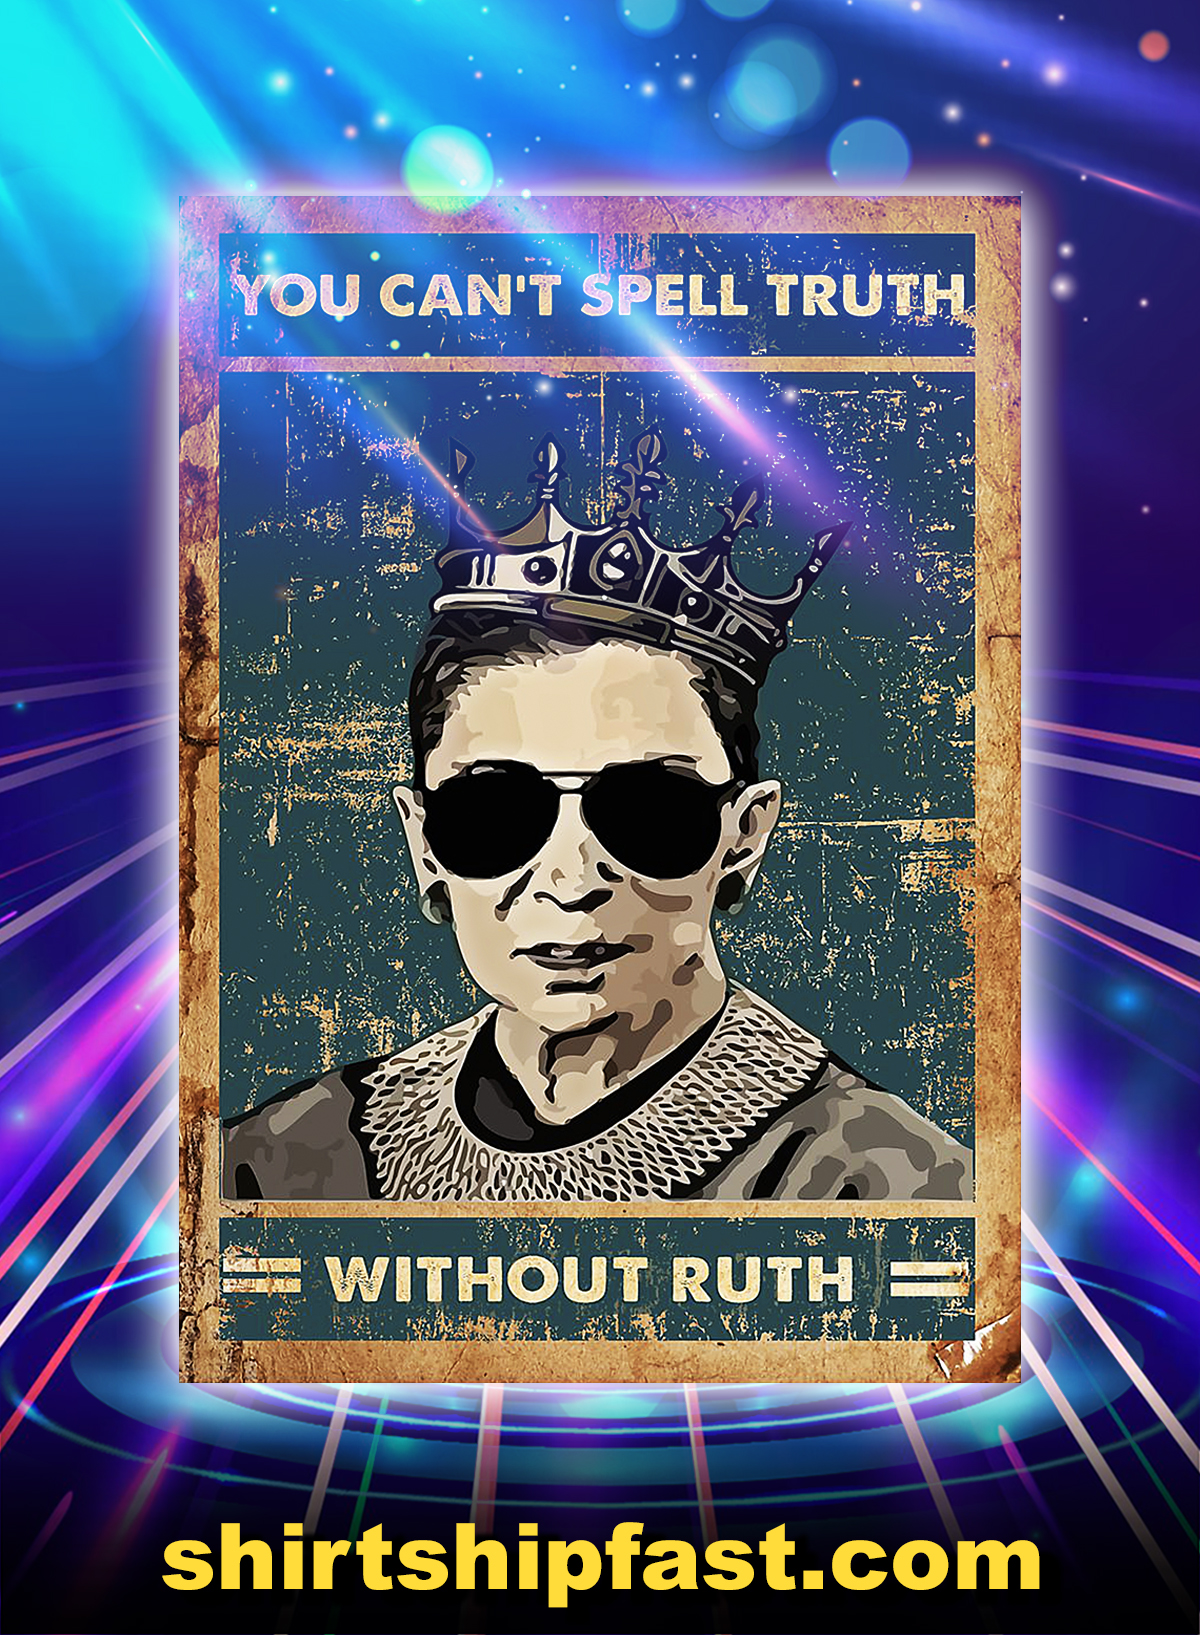 You can't spell truth without ruth poster - A4